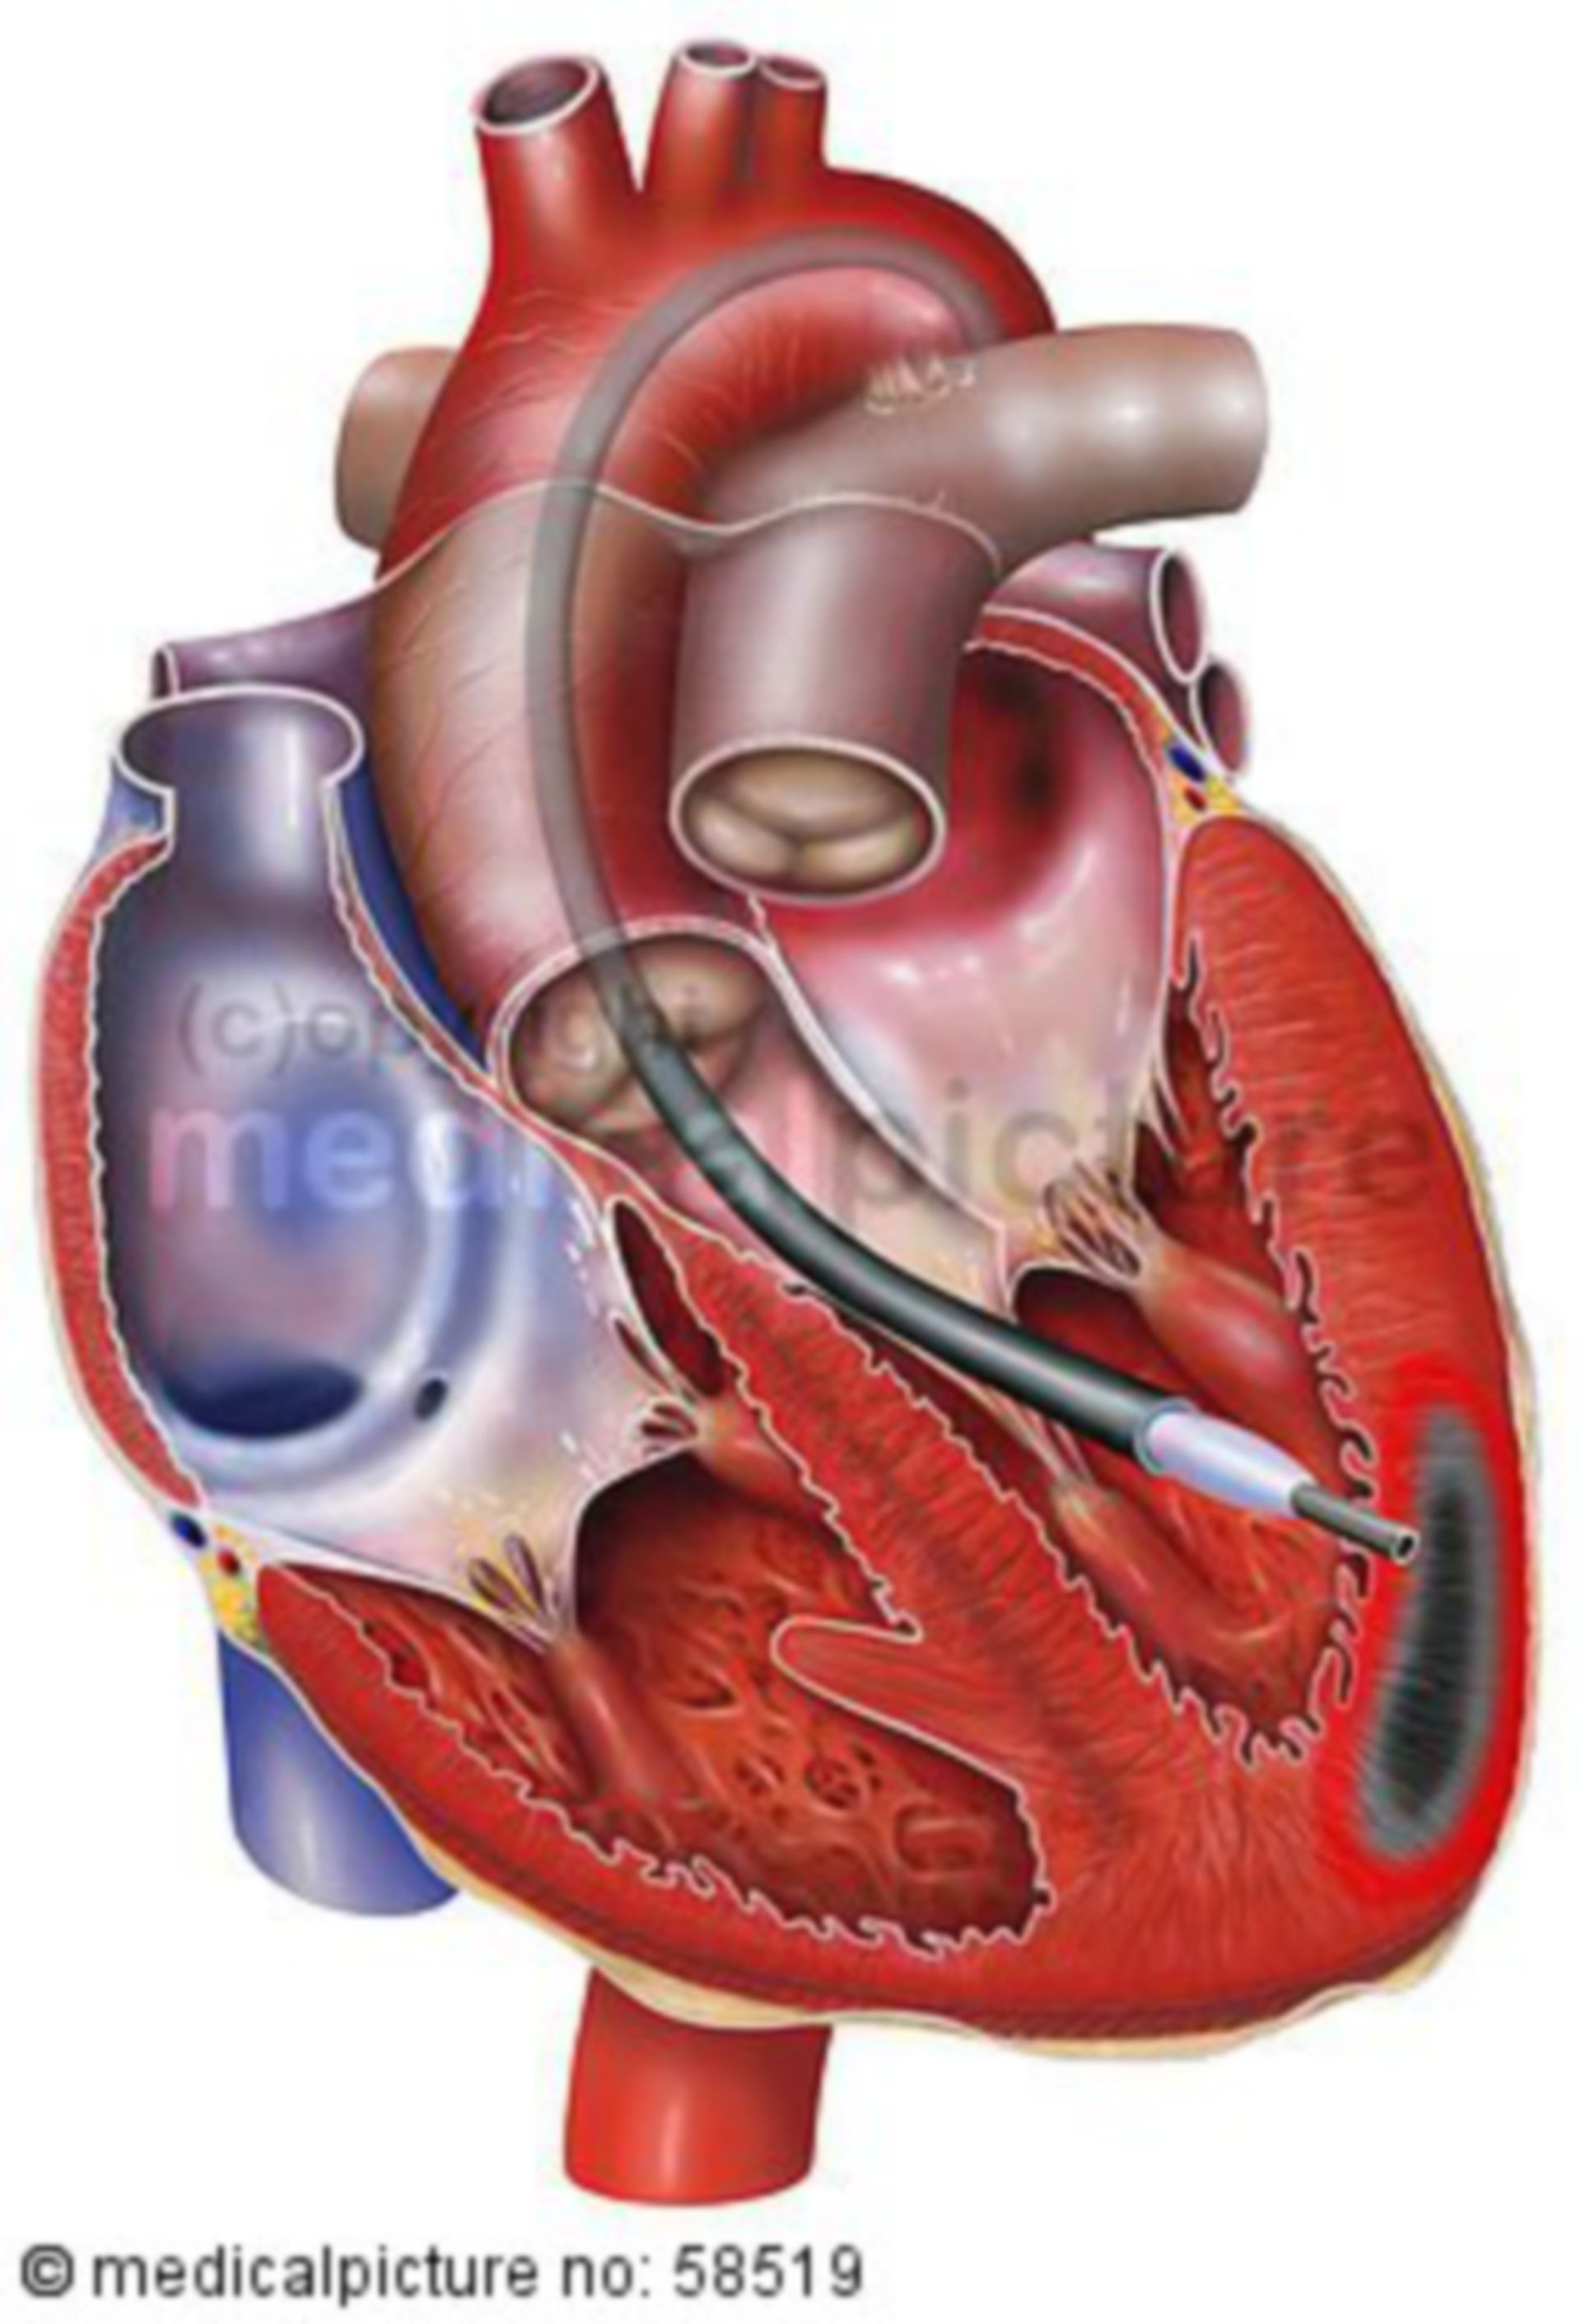 Cardiac stem cell therapy